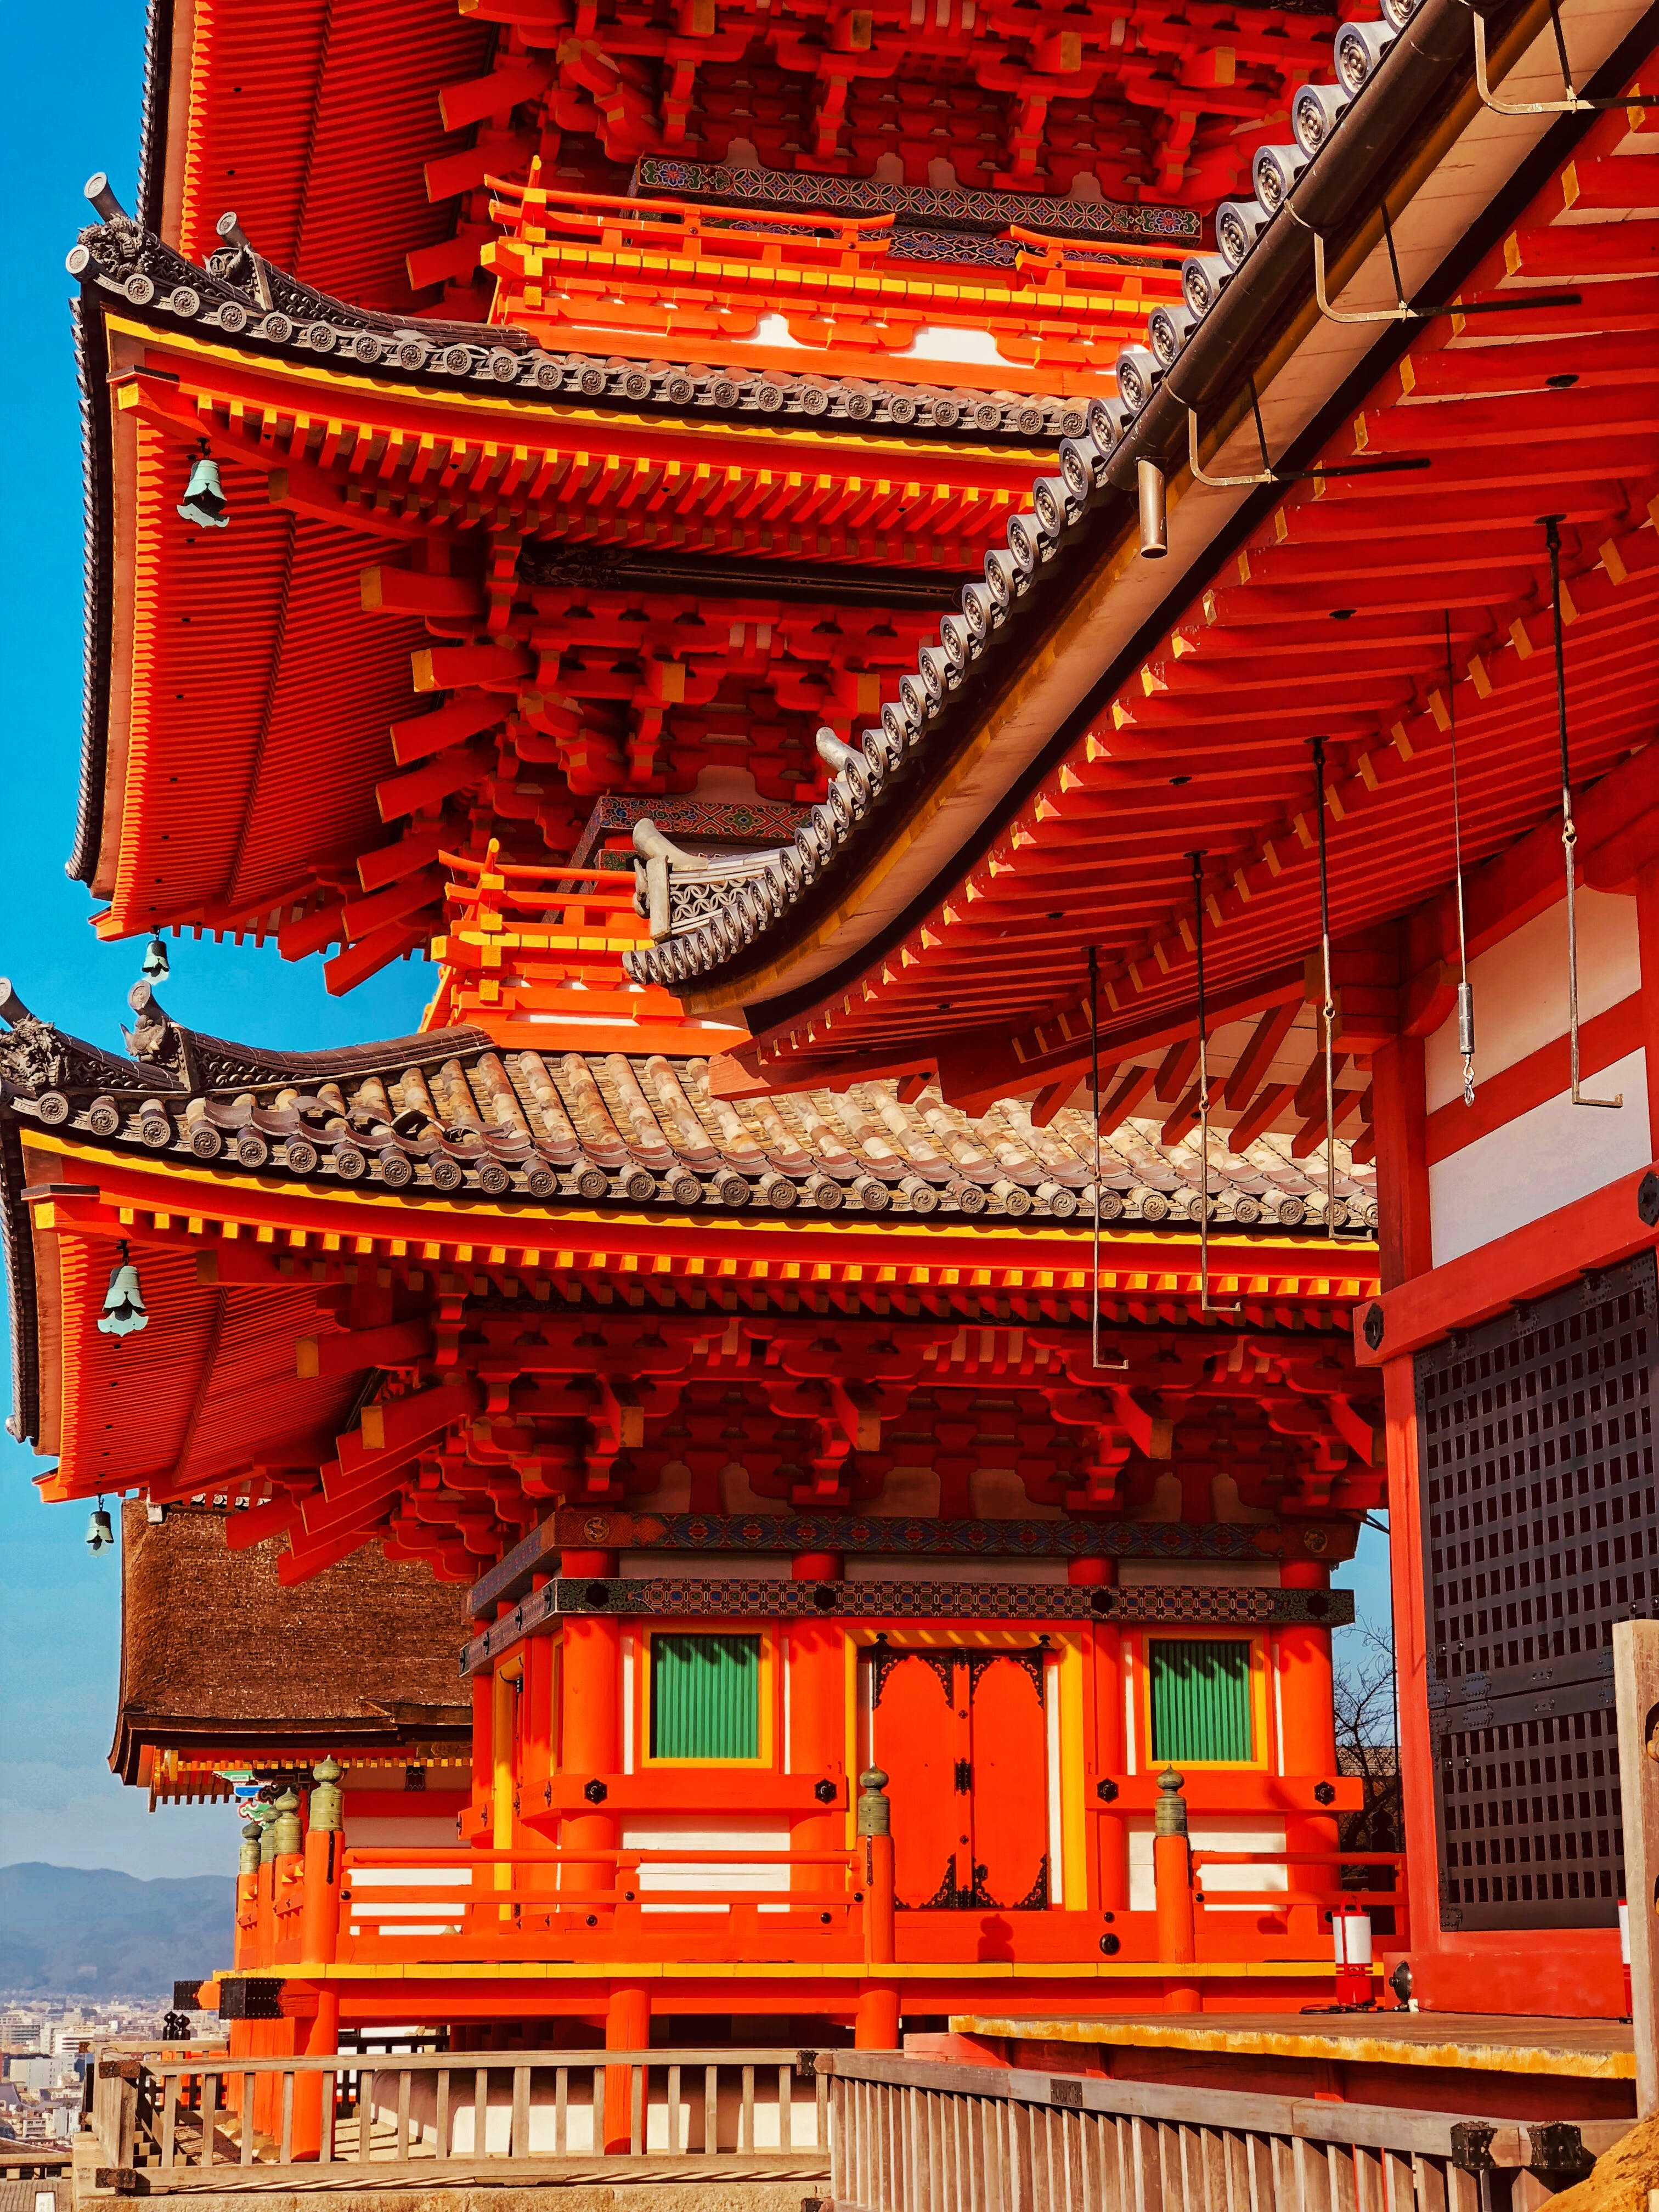 Red and Black Pagoda